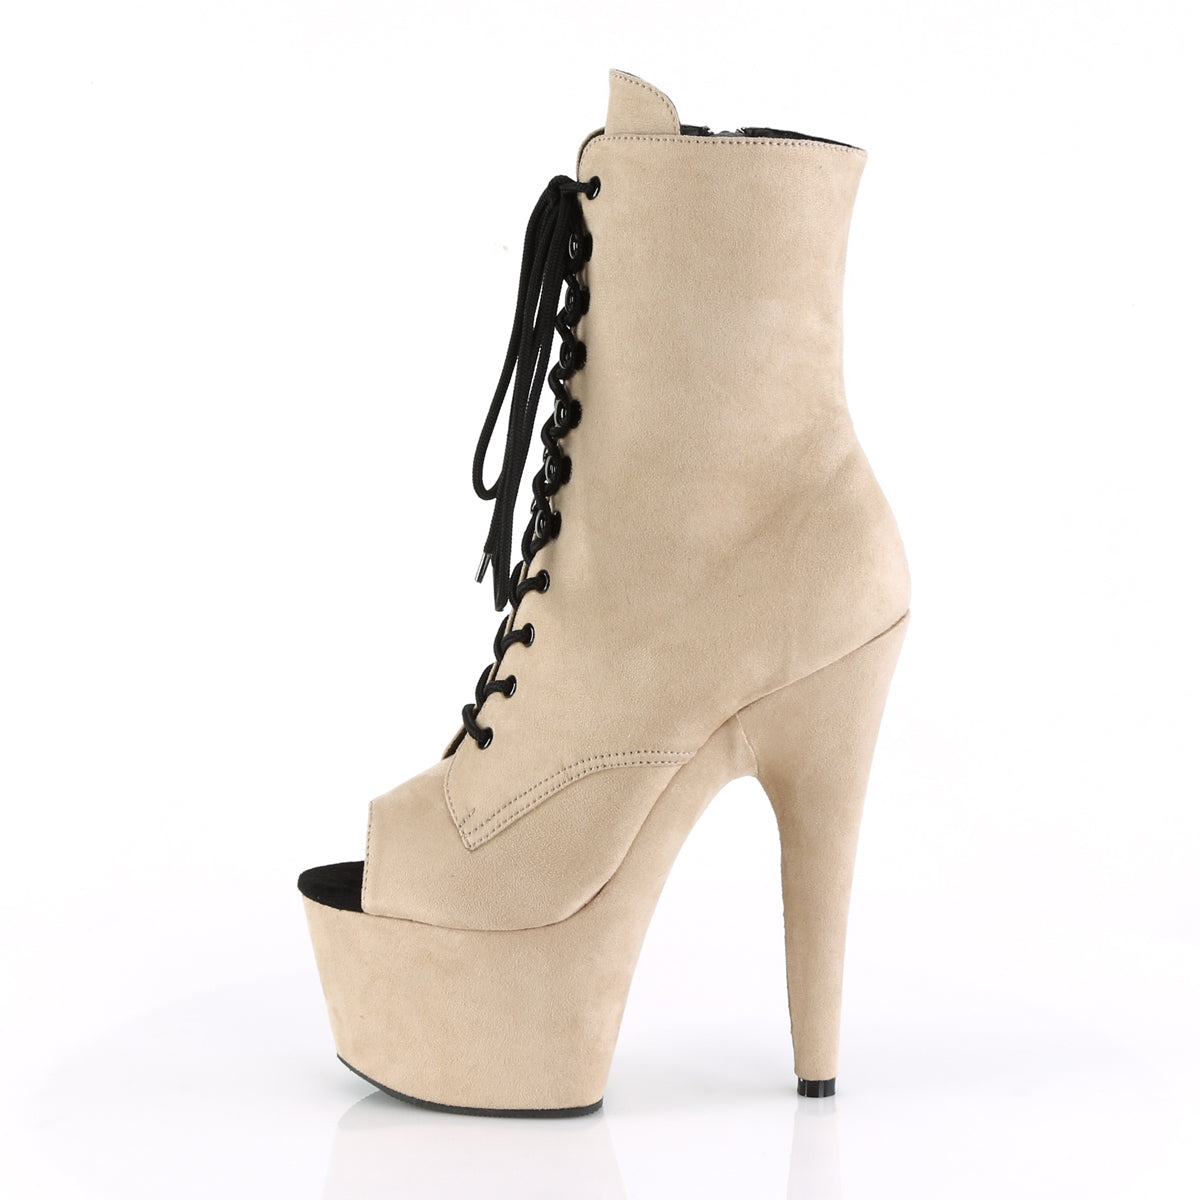 2c6c402988738 ... Load image into Gallery viewer, ADORE-1021FS Pleaser Sexy Shoes 7 Inch  Heel, ...